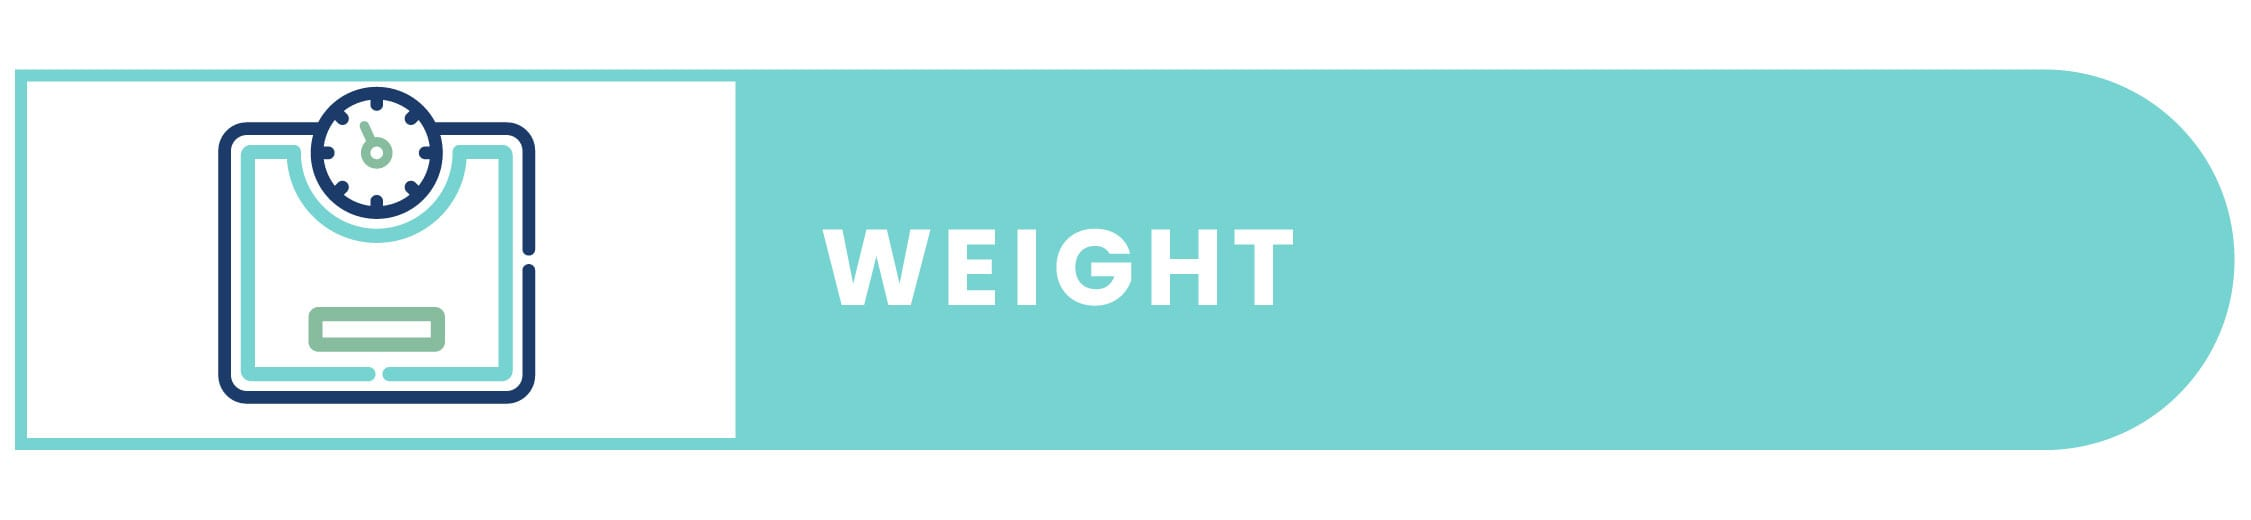 Electric Bike Weight icon